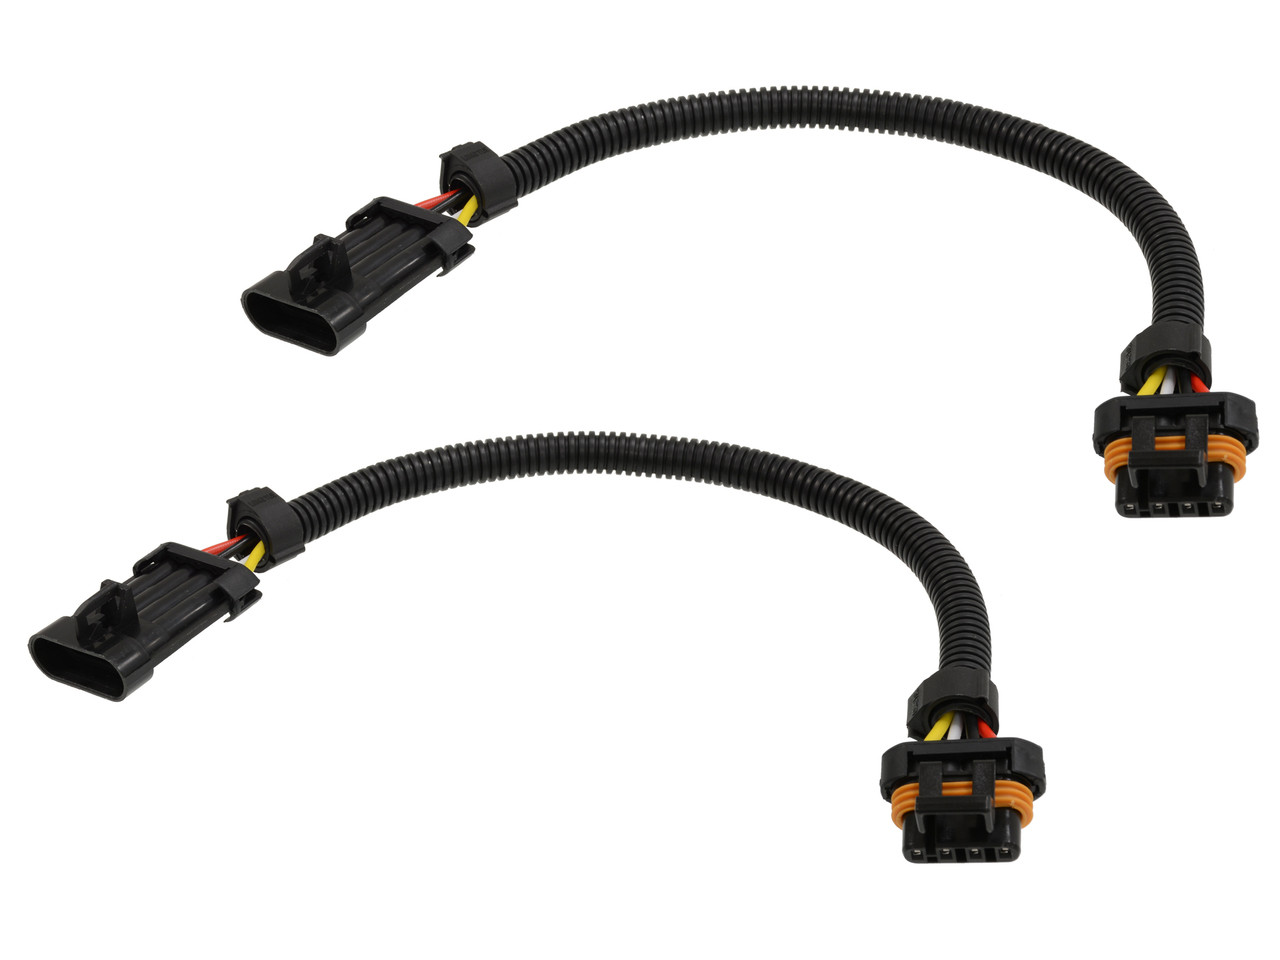 Oxygen sensor extensions page 1 michigan motorsports 12 oxygen o2 sensor extension harness fits ls1 ls6 lt4 with 4 wire flat sciox Choice Image